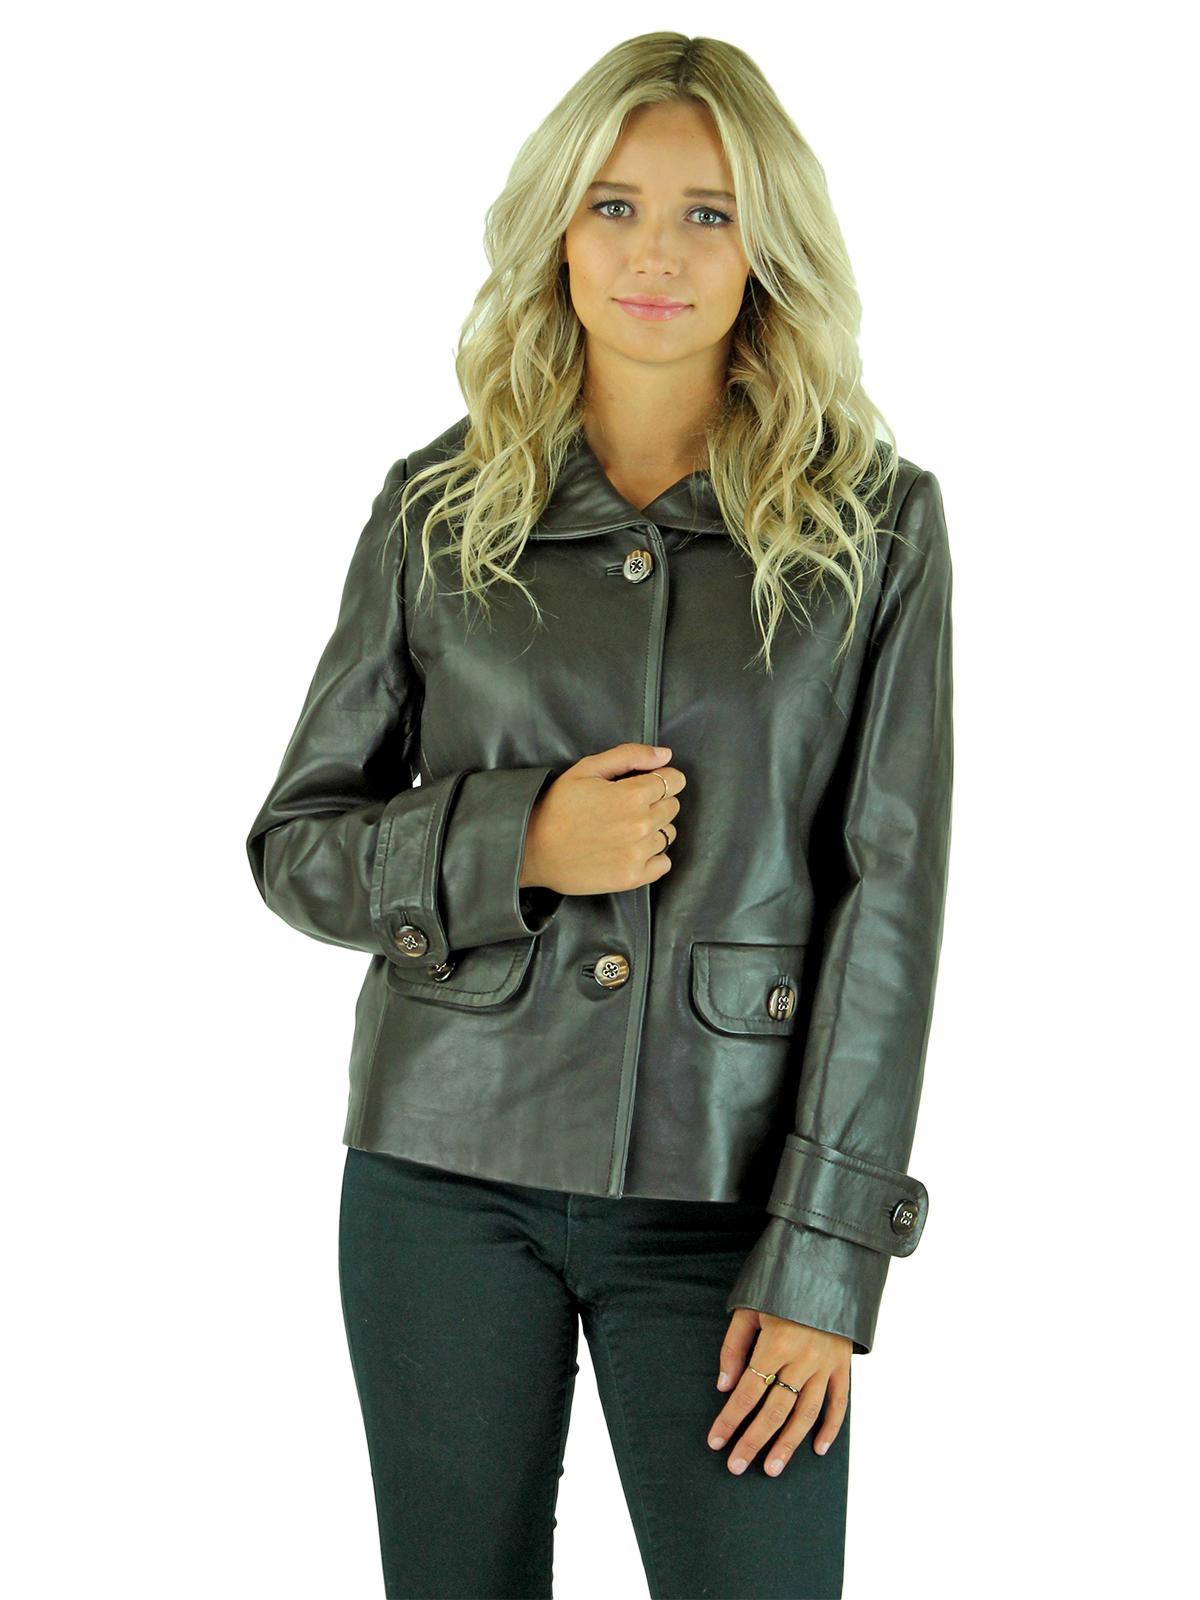 Dark Chocolate Brown Leather Jacket (Zip Out Lining)